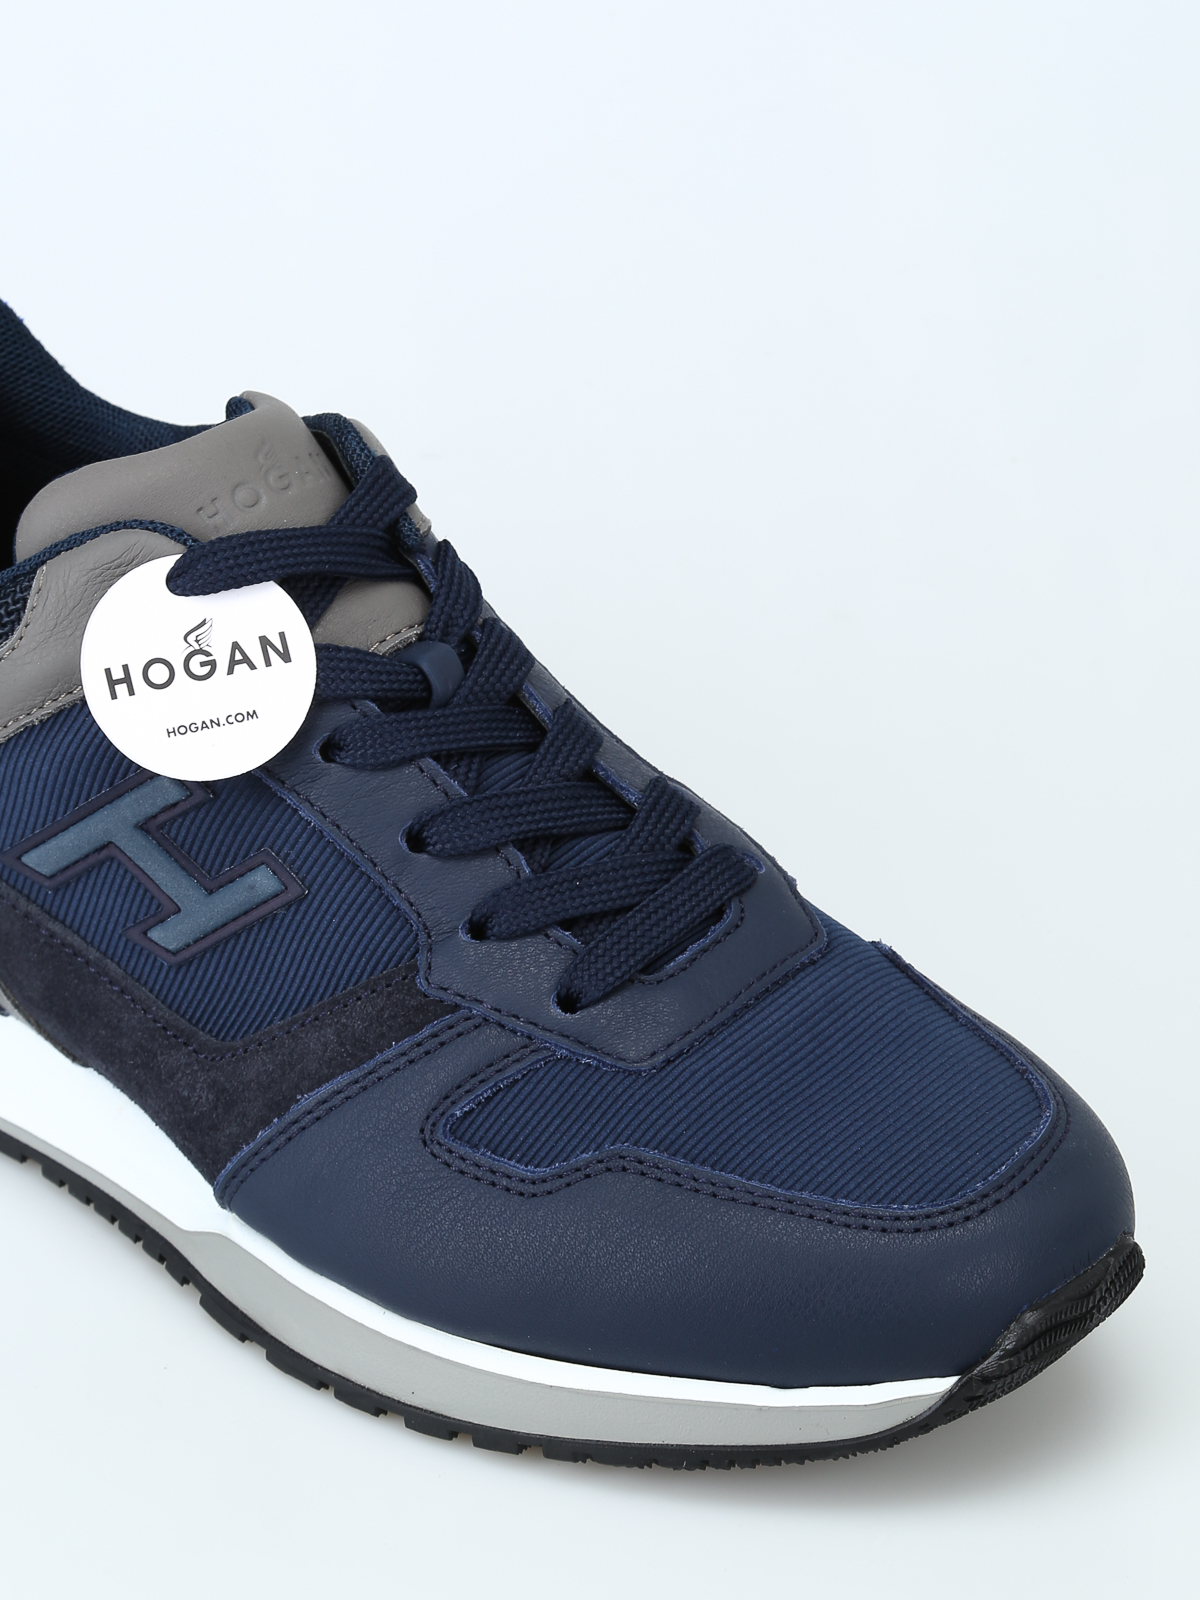 Hogan - H321 blue leather and suede sneakers - trainers ...